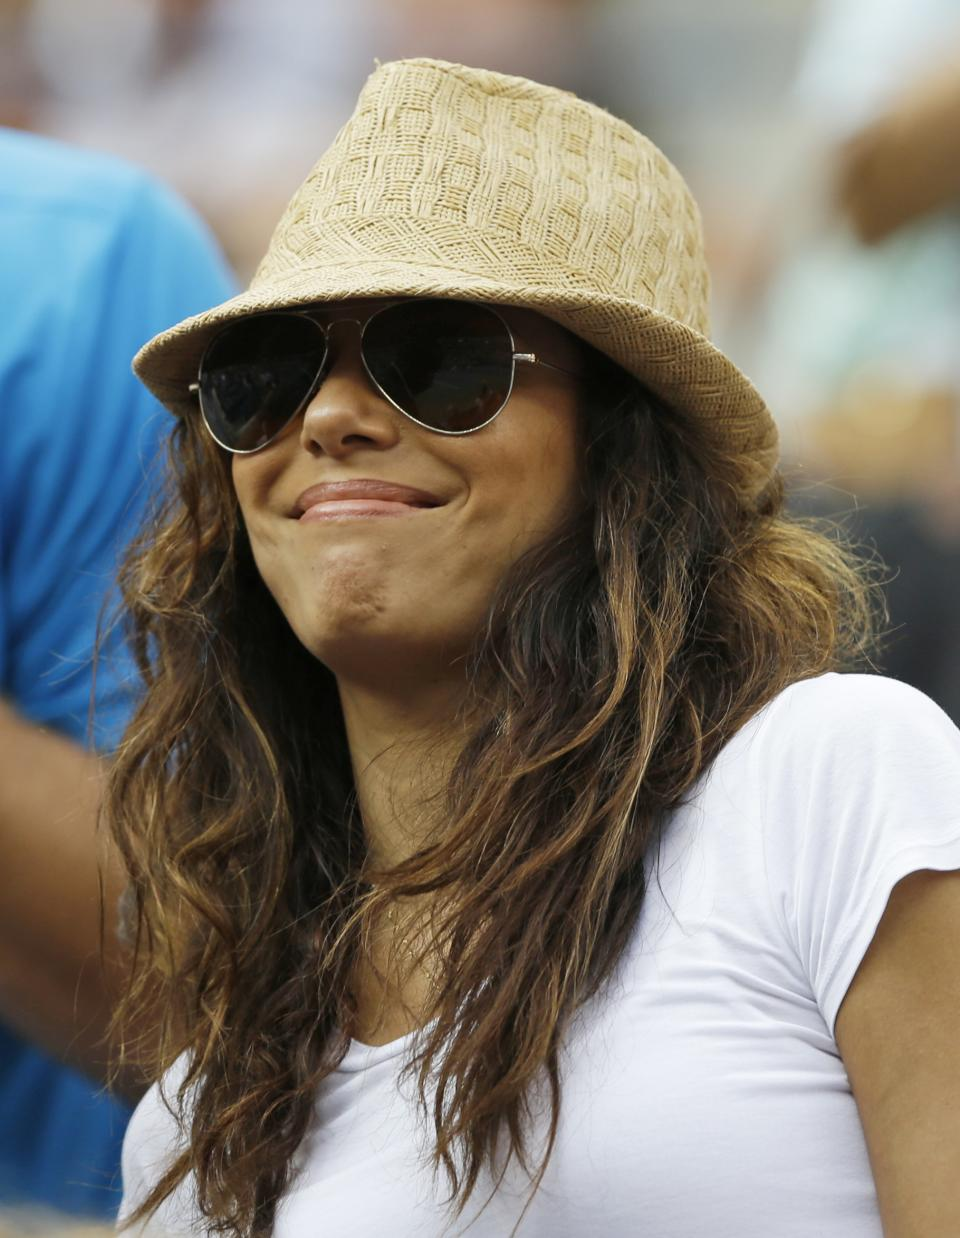 Eva Longoria watches a semifinal match between Serena Williams and Italy's Sara Errani at the 2012 US Open tennis tournament, Friday, Sept. 7, 2012, in New York. (AP Photo/Darron Cummings)